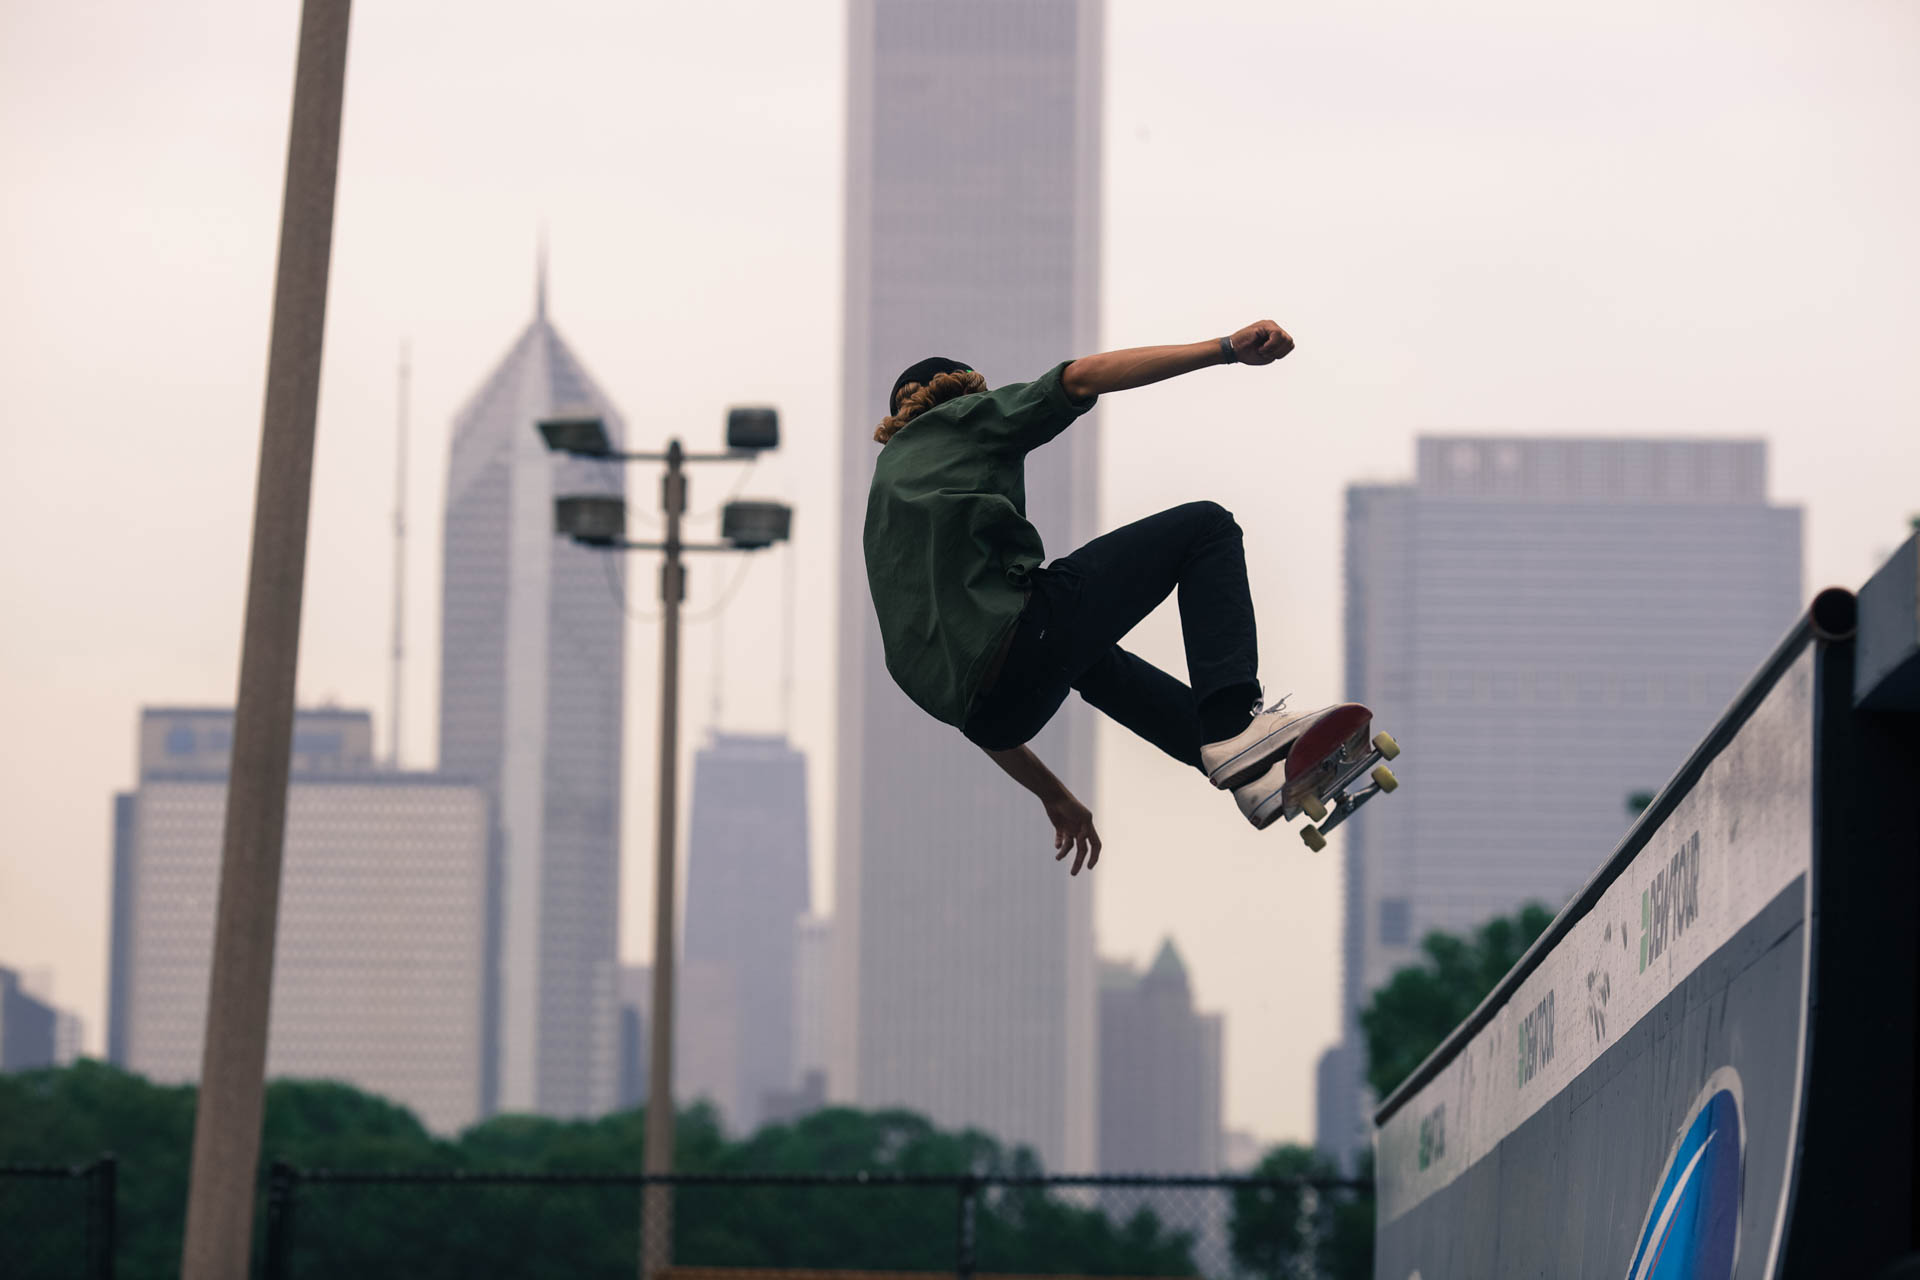 Photos: The Dew Tour Hits Chicago's New Skate Plaza in Grant Park